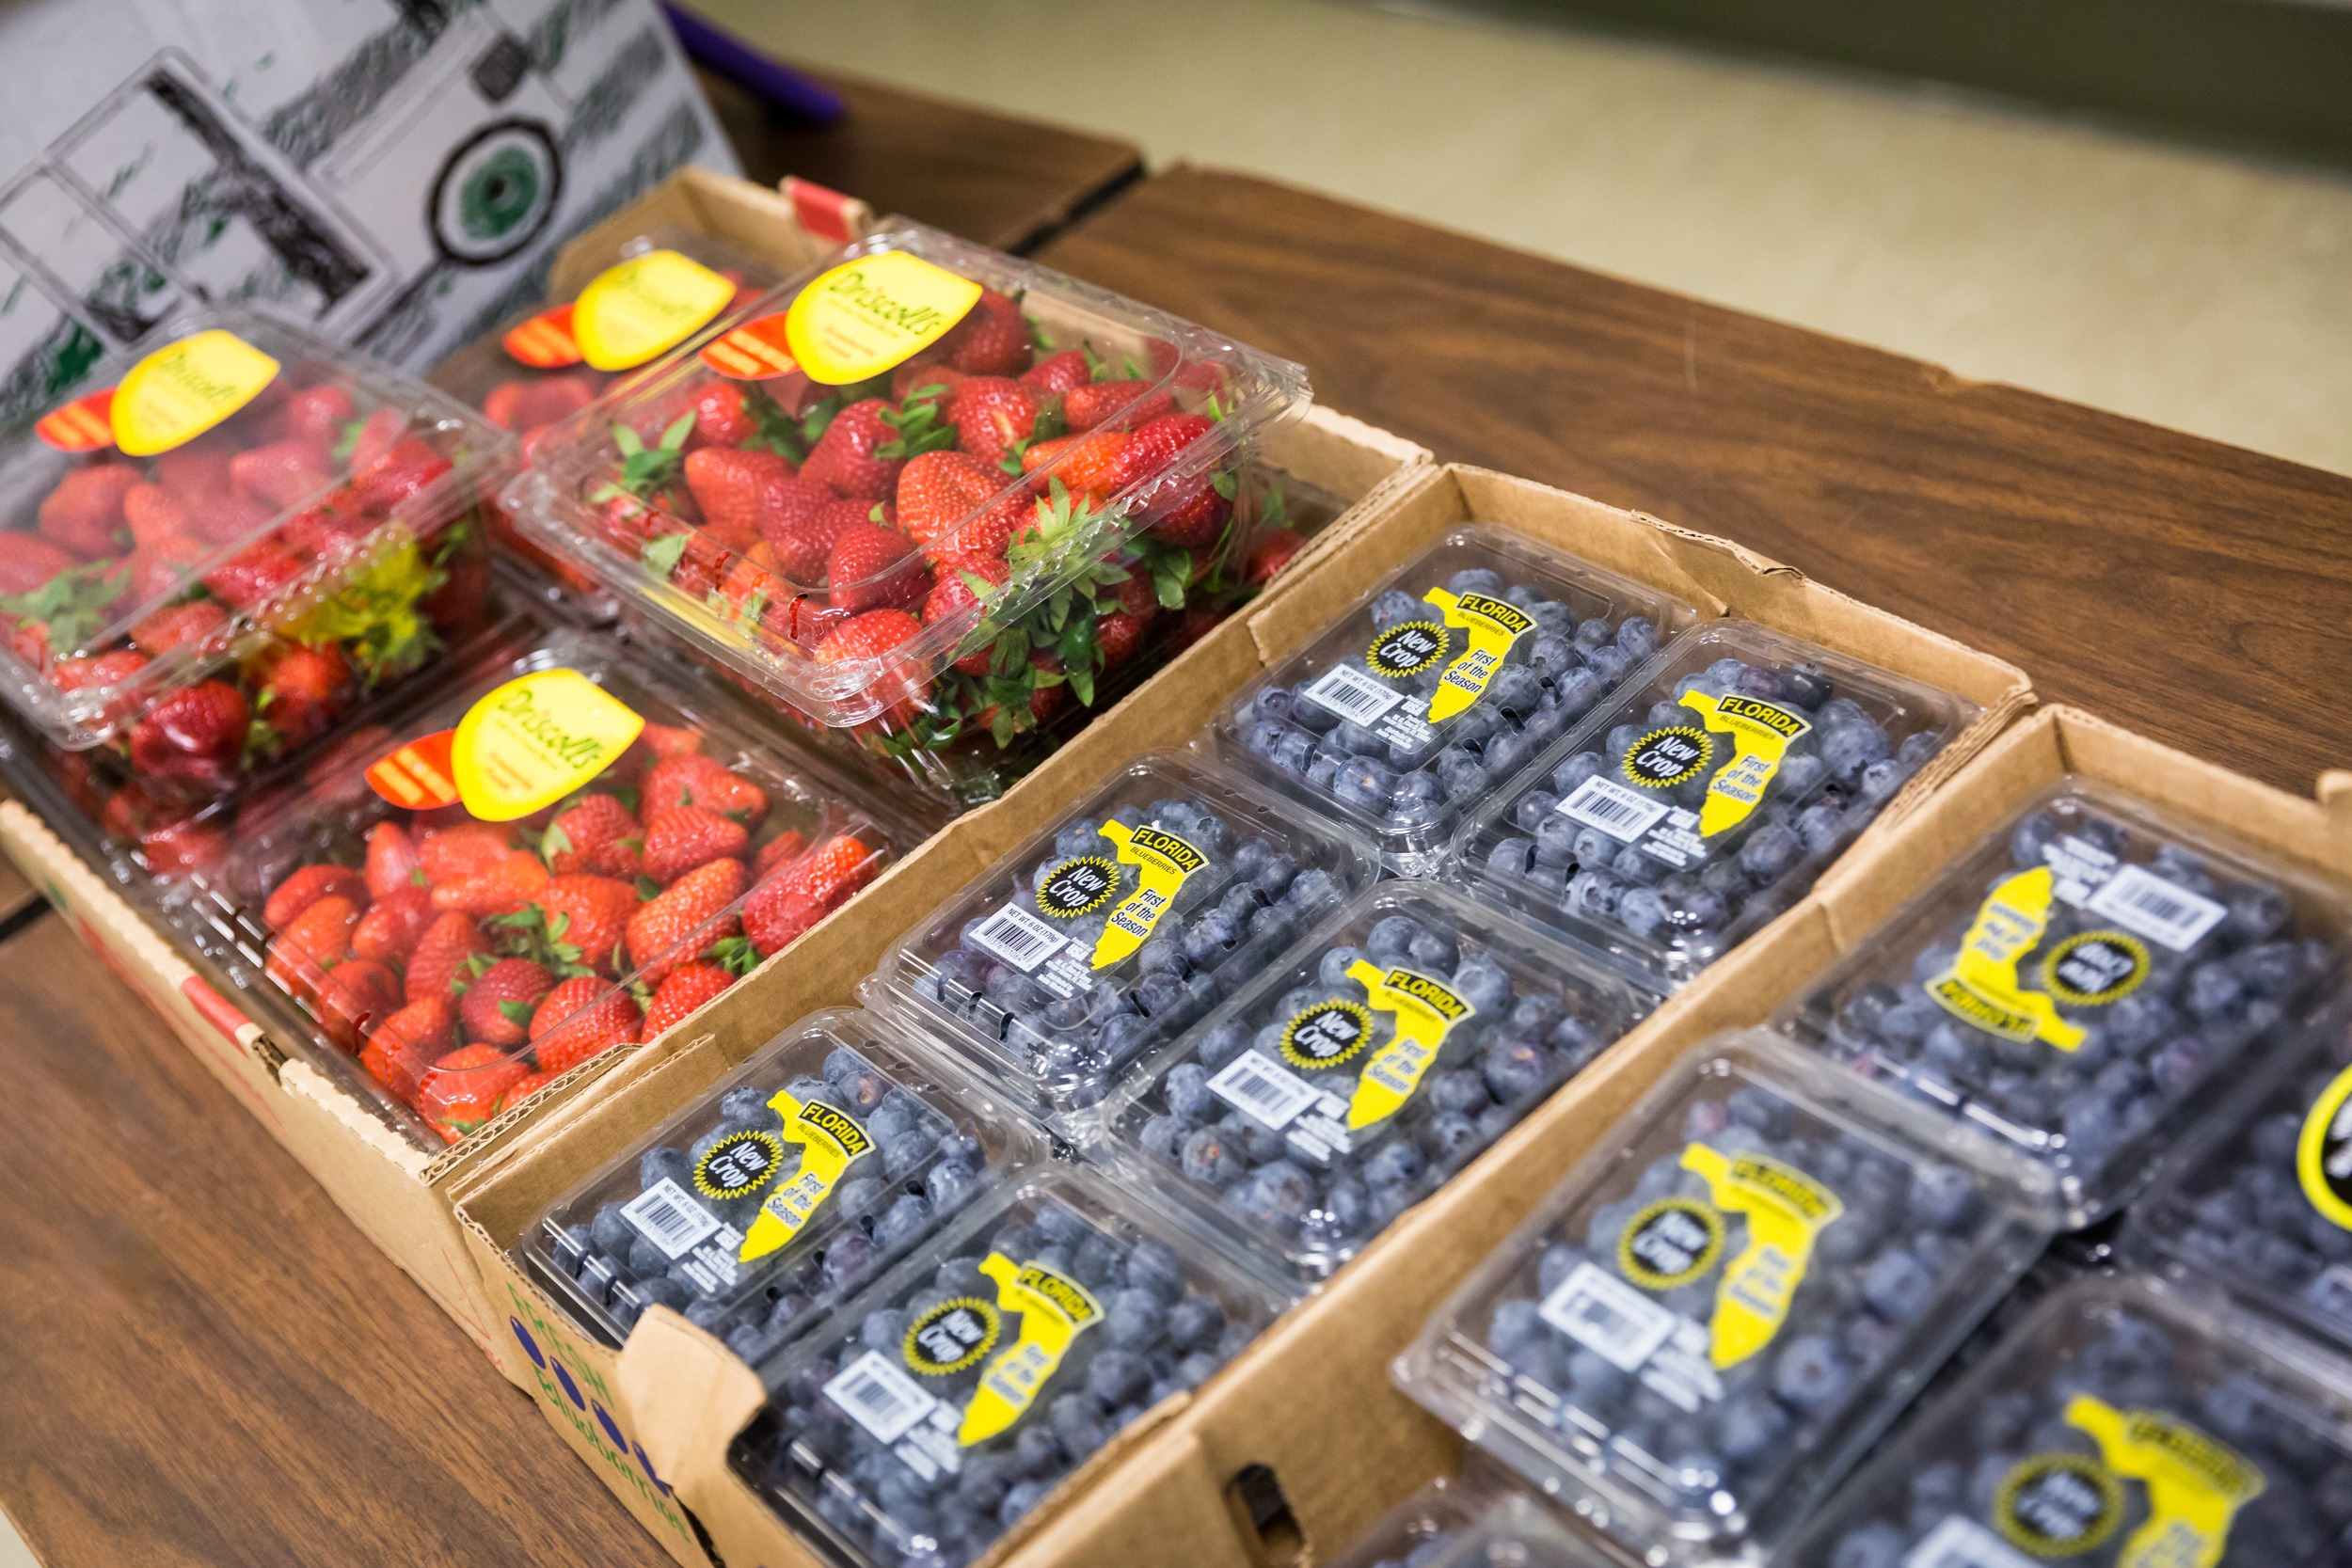 packages of strawberries and blueberries on a folding table for the food pantry